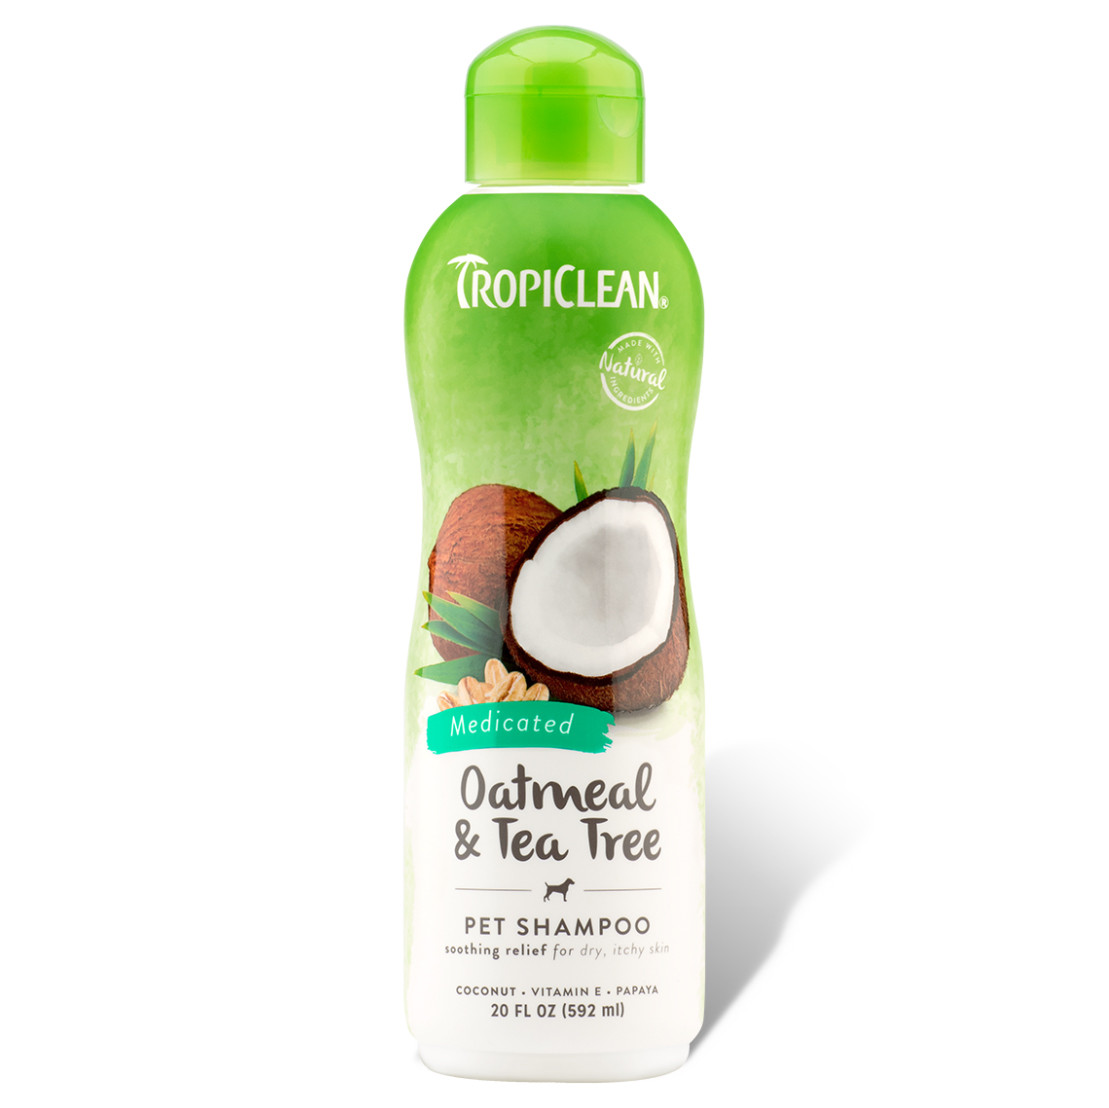 click here to shop TropiClean Oatmeal & Tea Tree Medicated Dog Shampoo